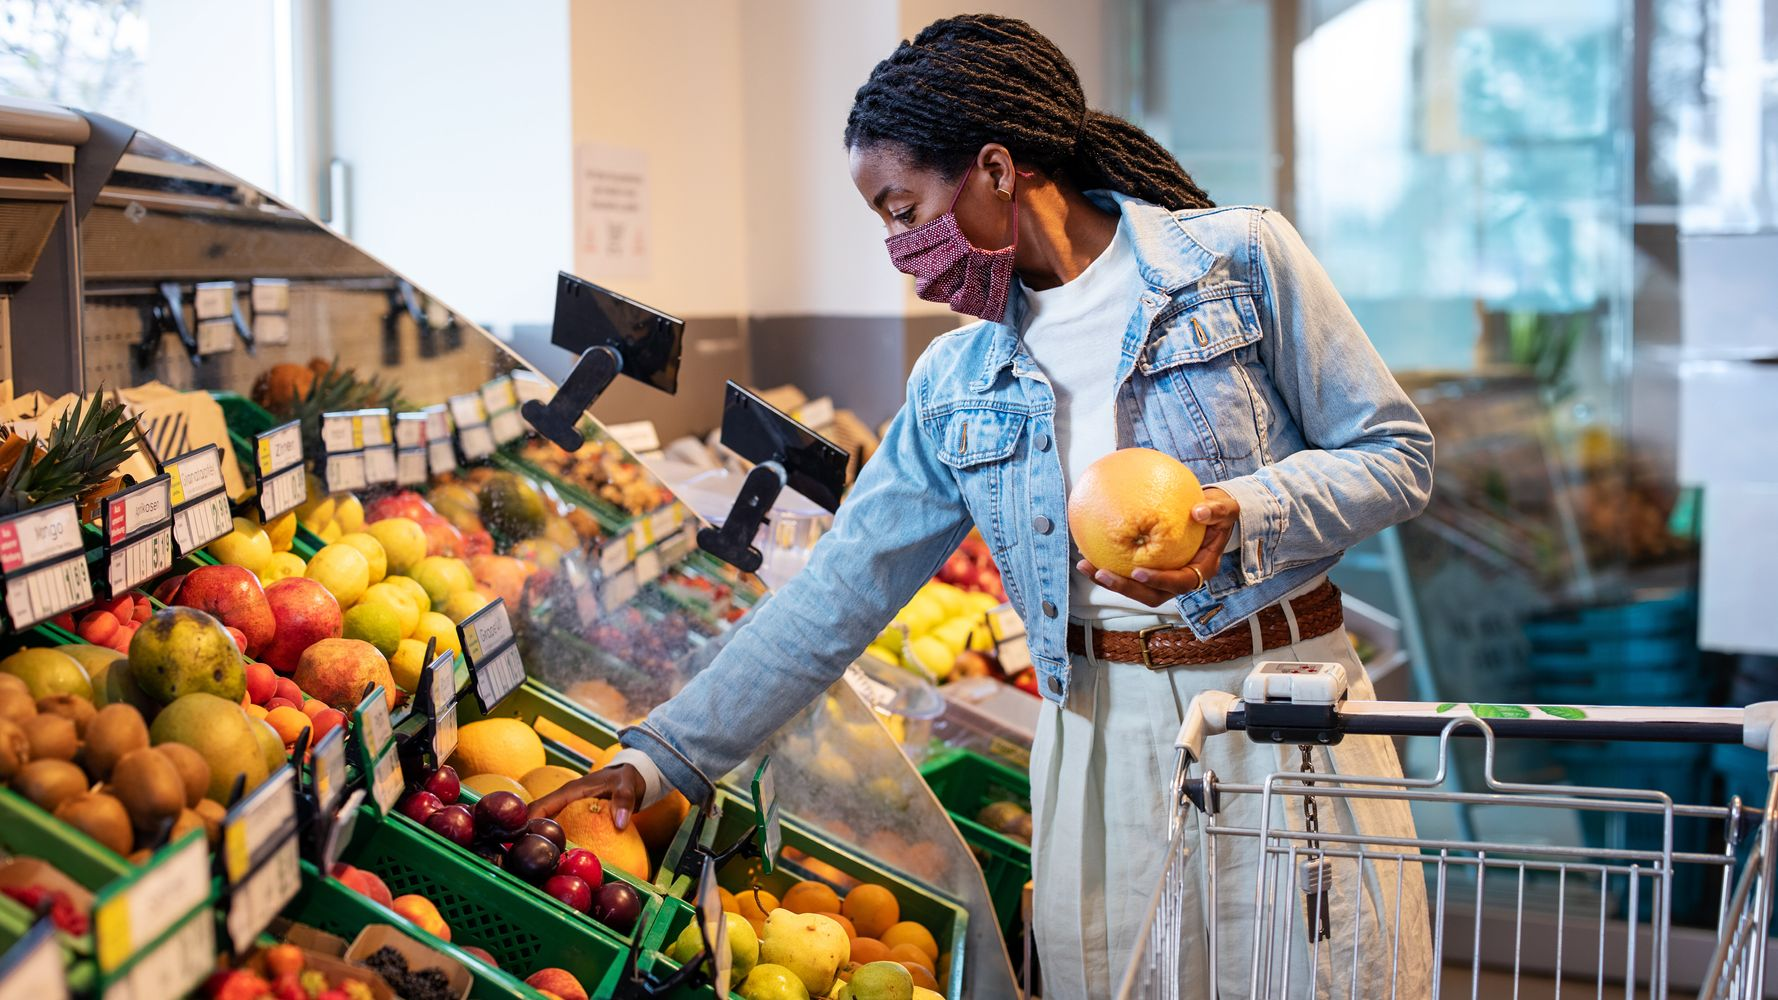 Tips For Smart, Stress-Free Grocery Shopping During The COVID-19 Pandemic